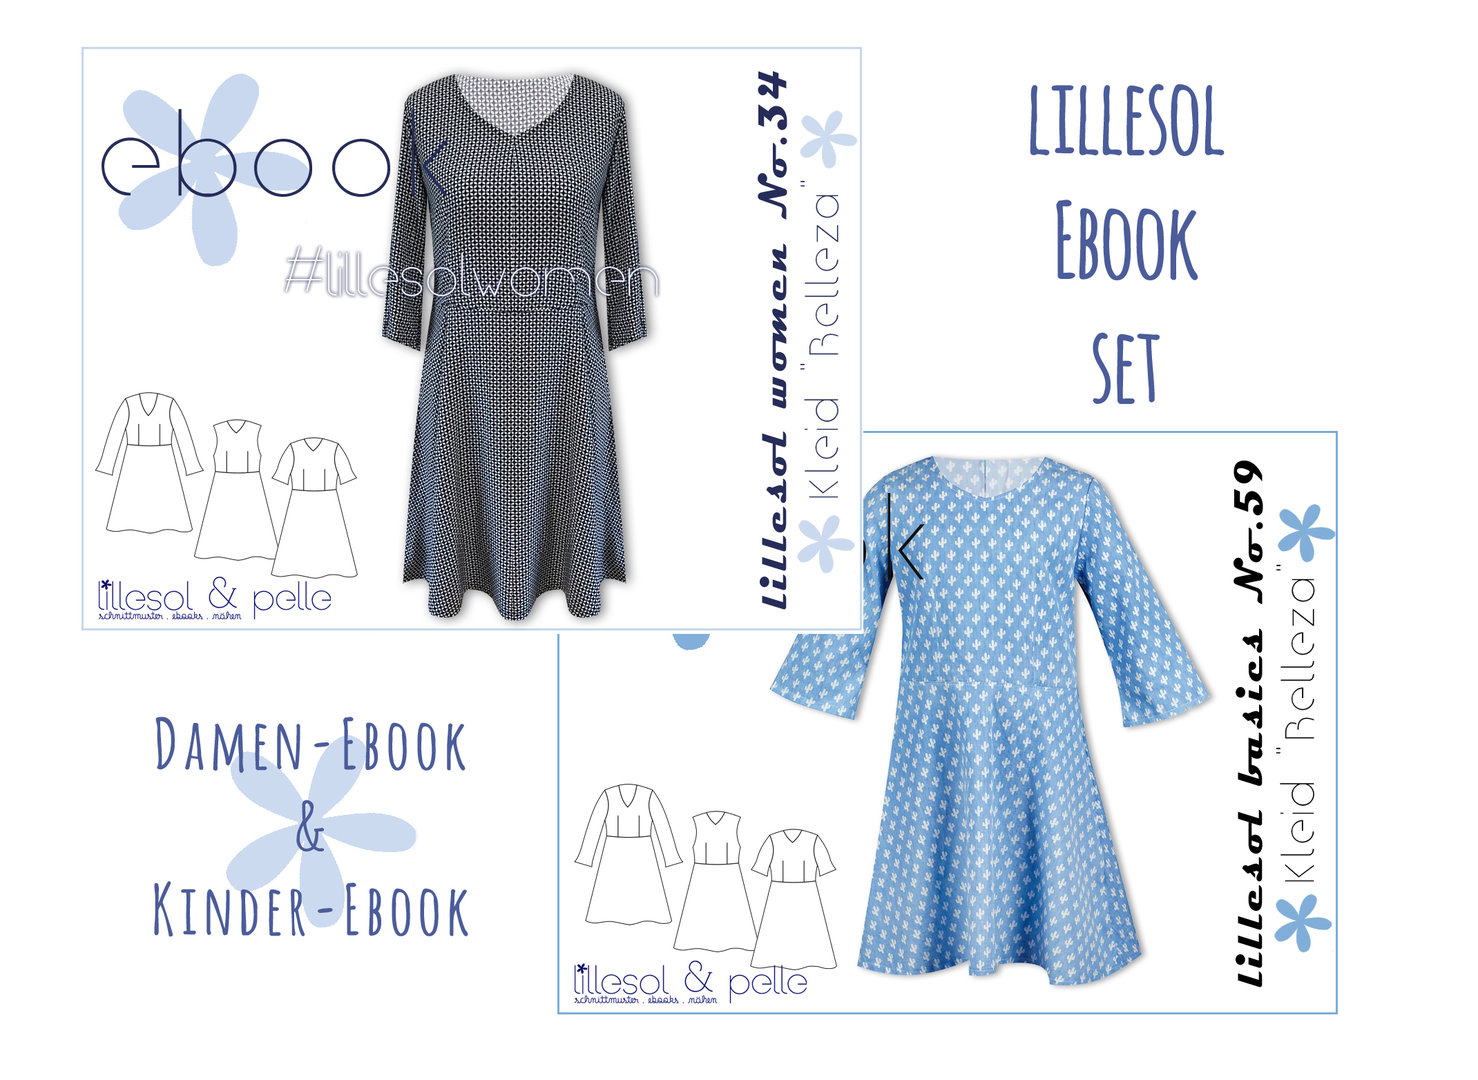 lillesol ebook set basics No.59 und women No.34 * mit Video-Nähanleitung *